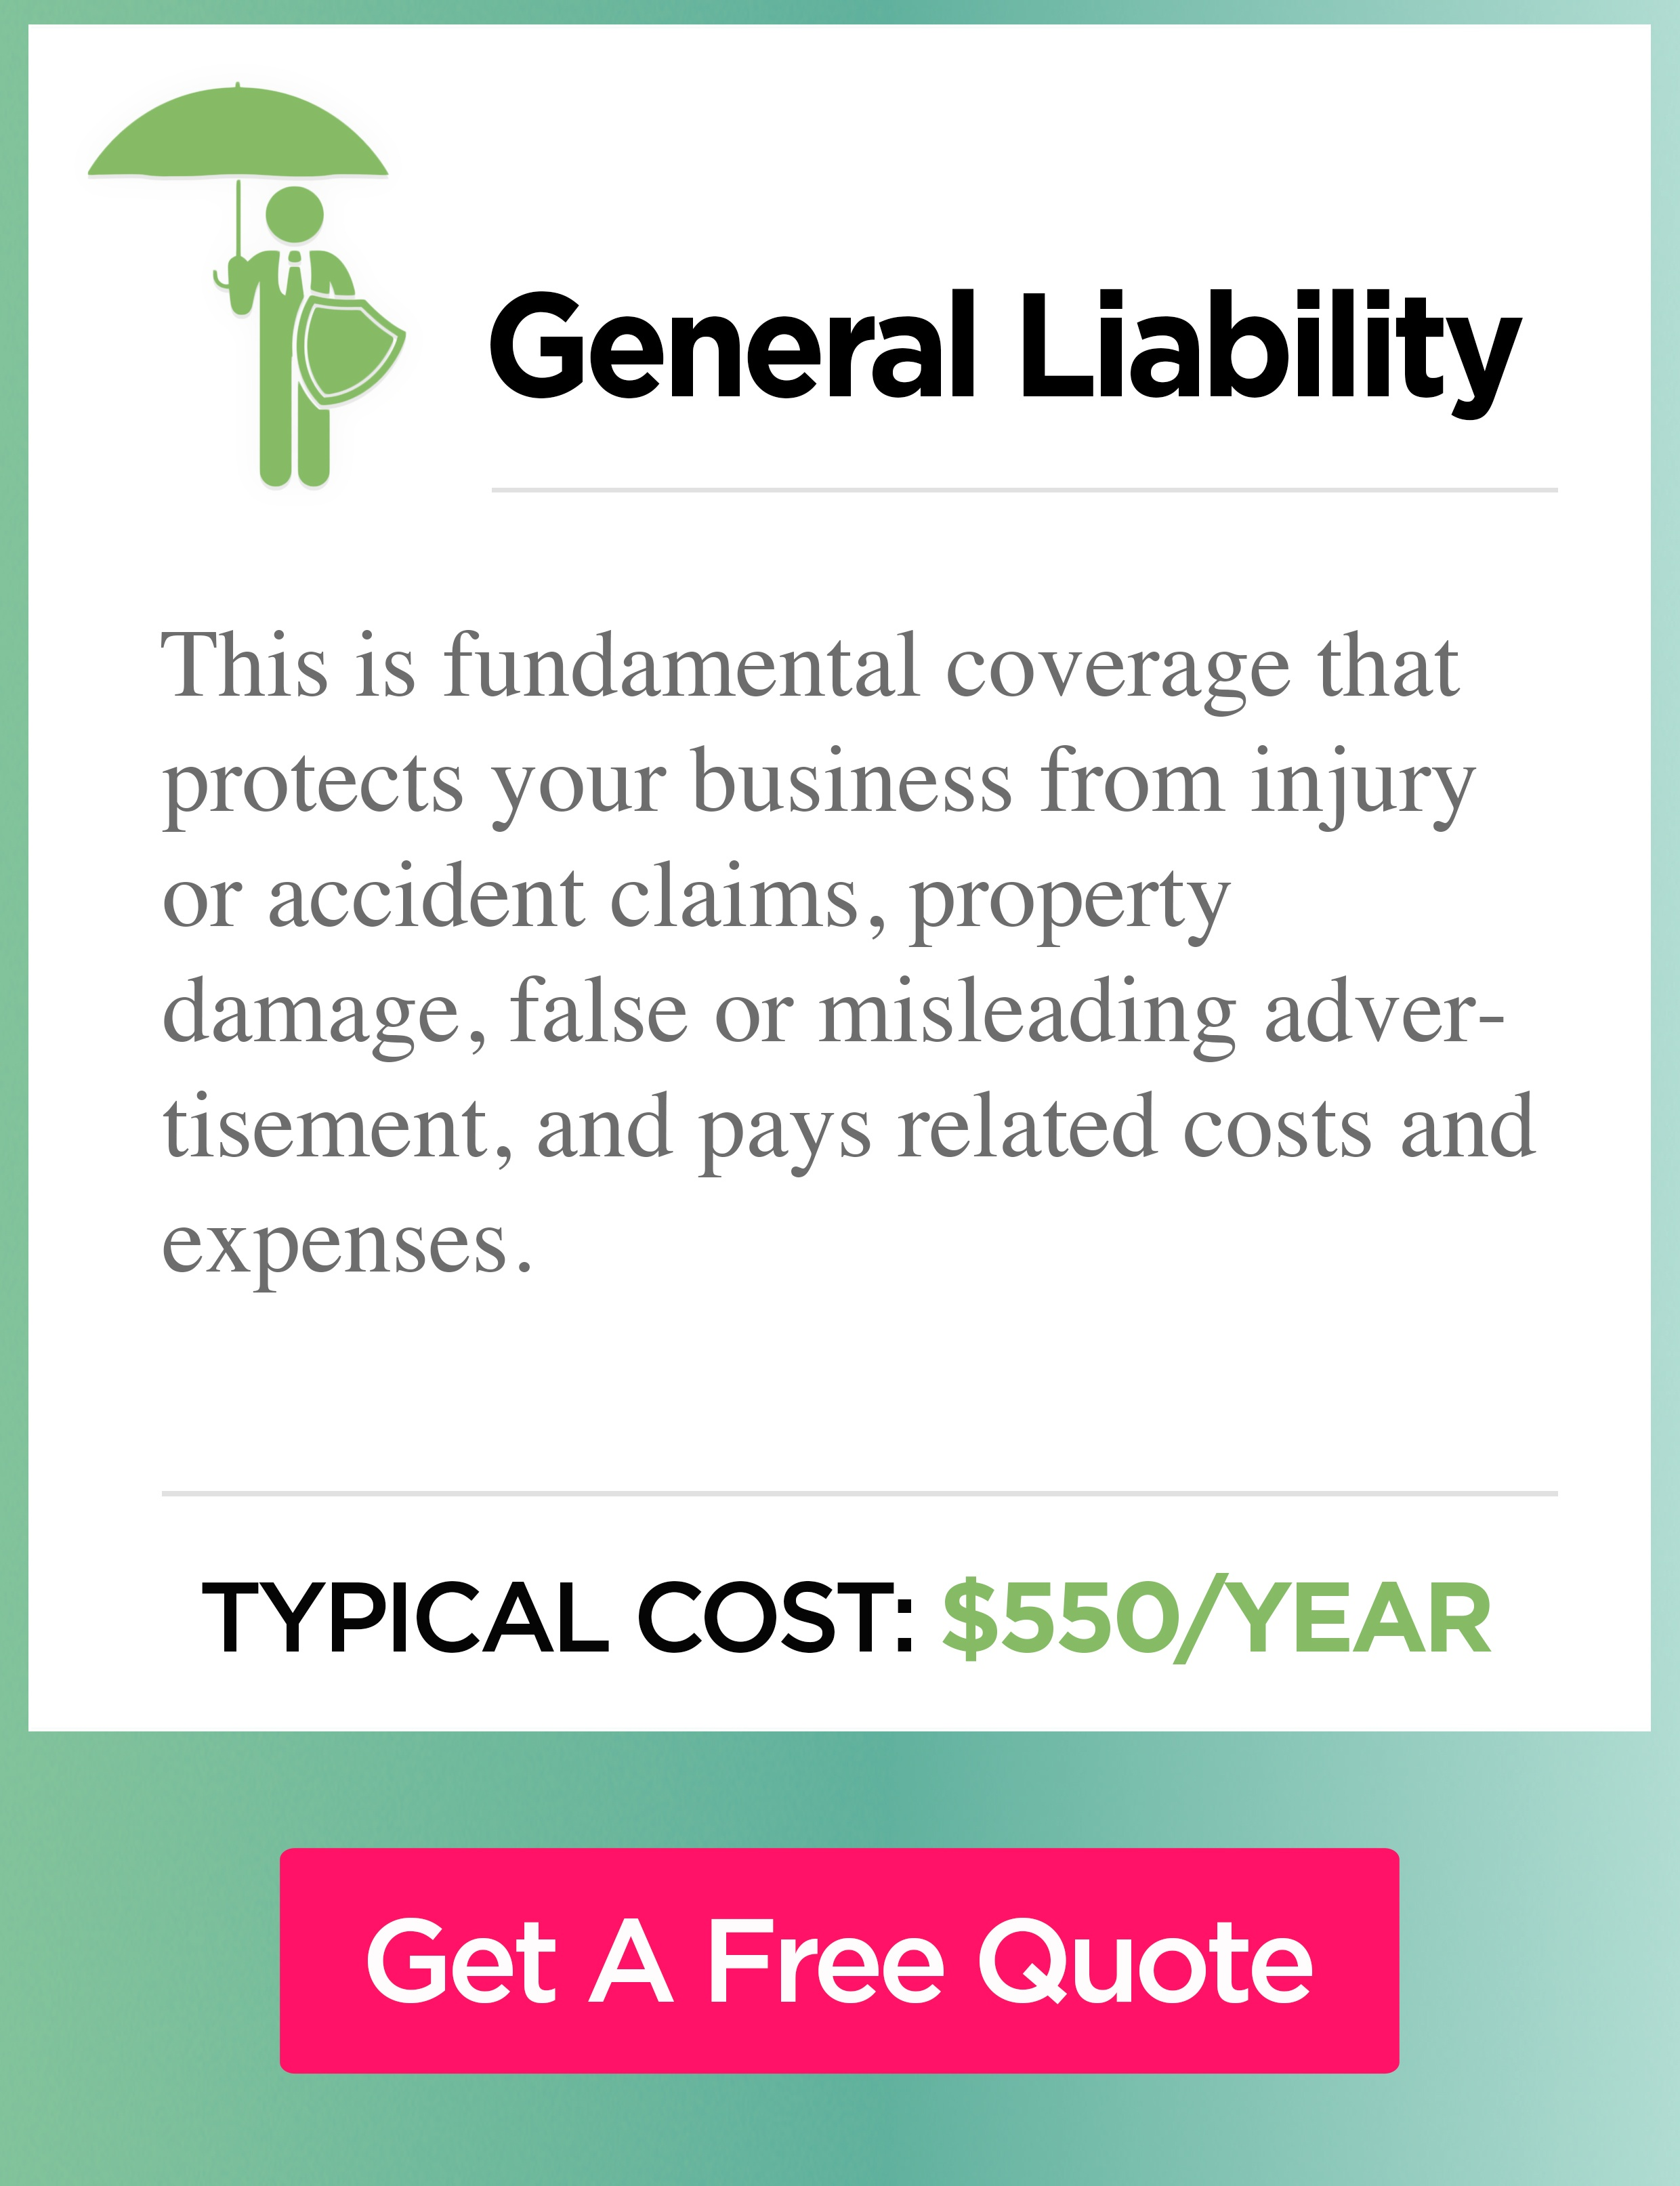 General liability cost